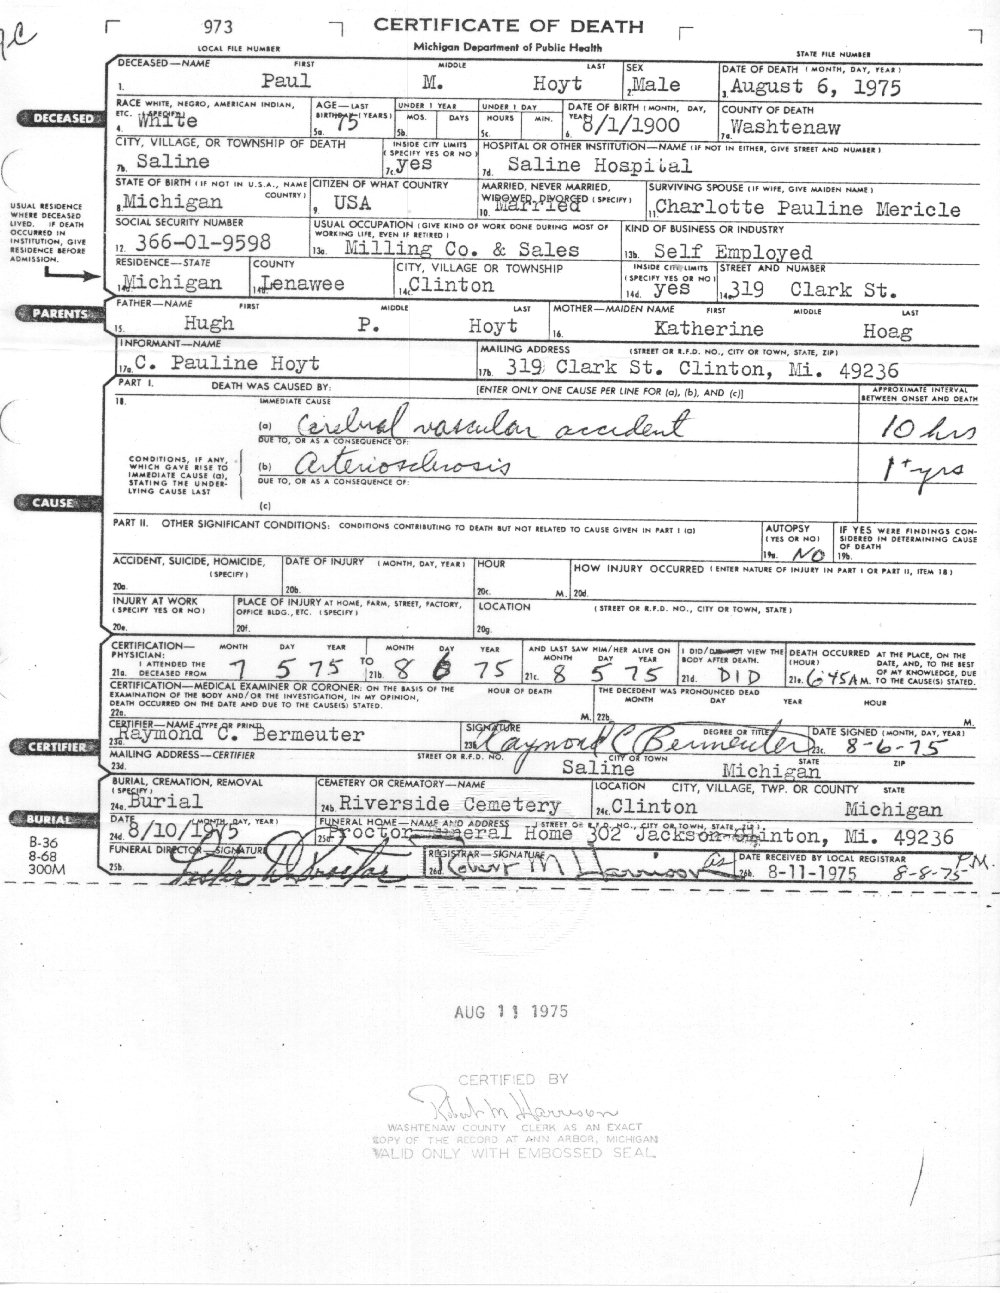 Paul M Hoyt's Death Certificate 1975